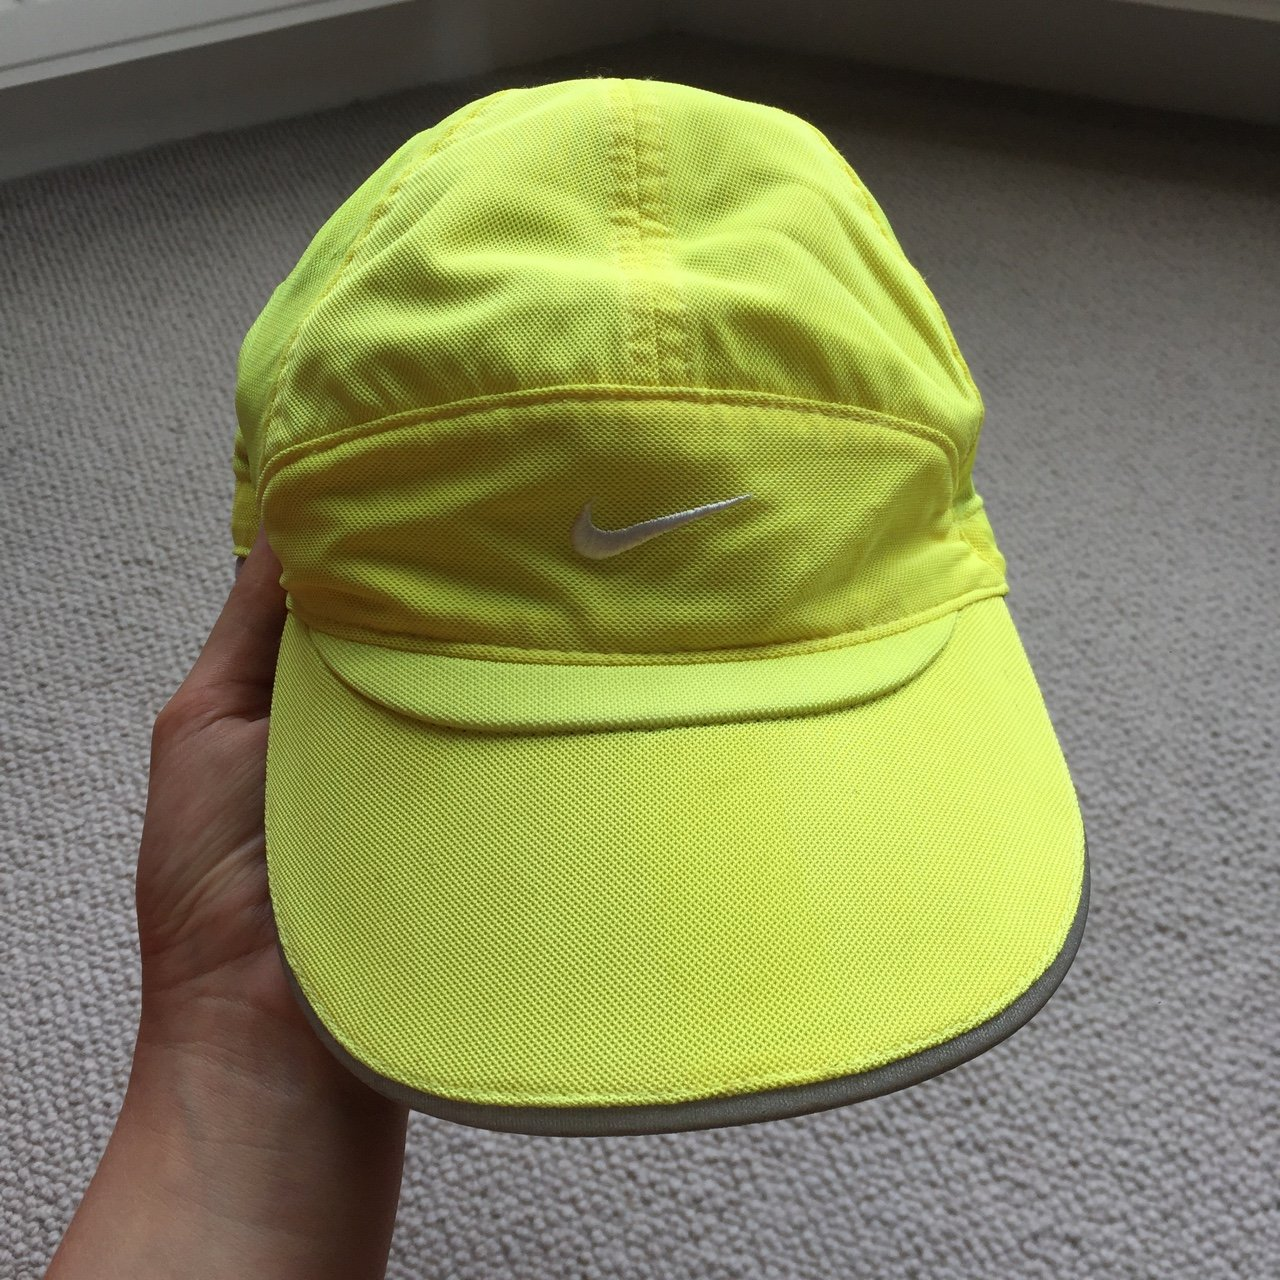 Nike dri-fit running hat   neon yellow   adjustable strap - Depop 8e96151d4aa